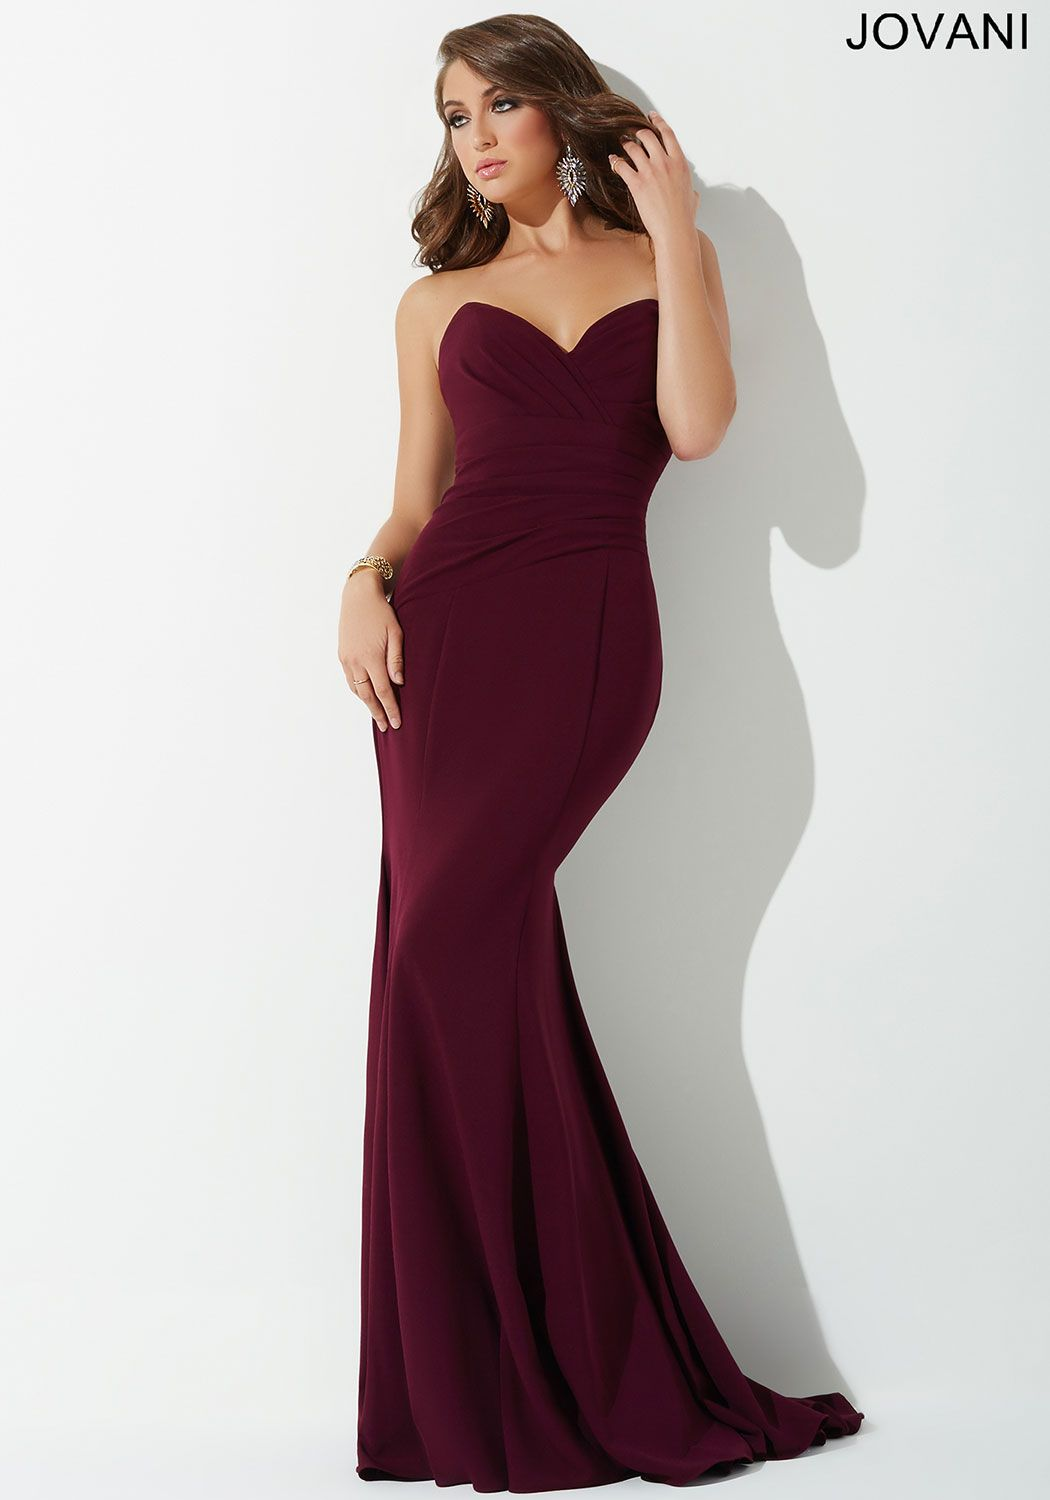 d84693dfbc3 Stunning strapless form fitting dress features a sweetheart neckline ...